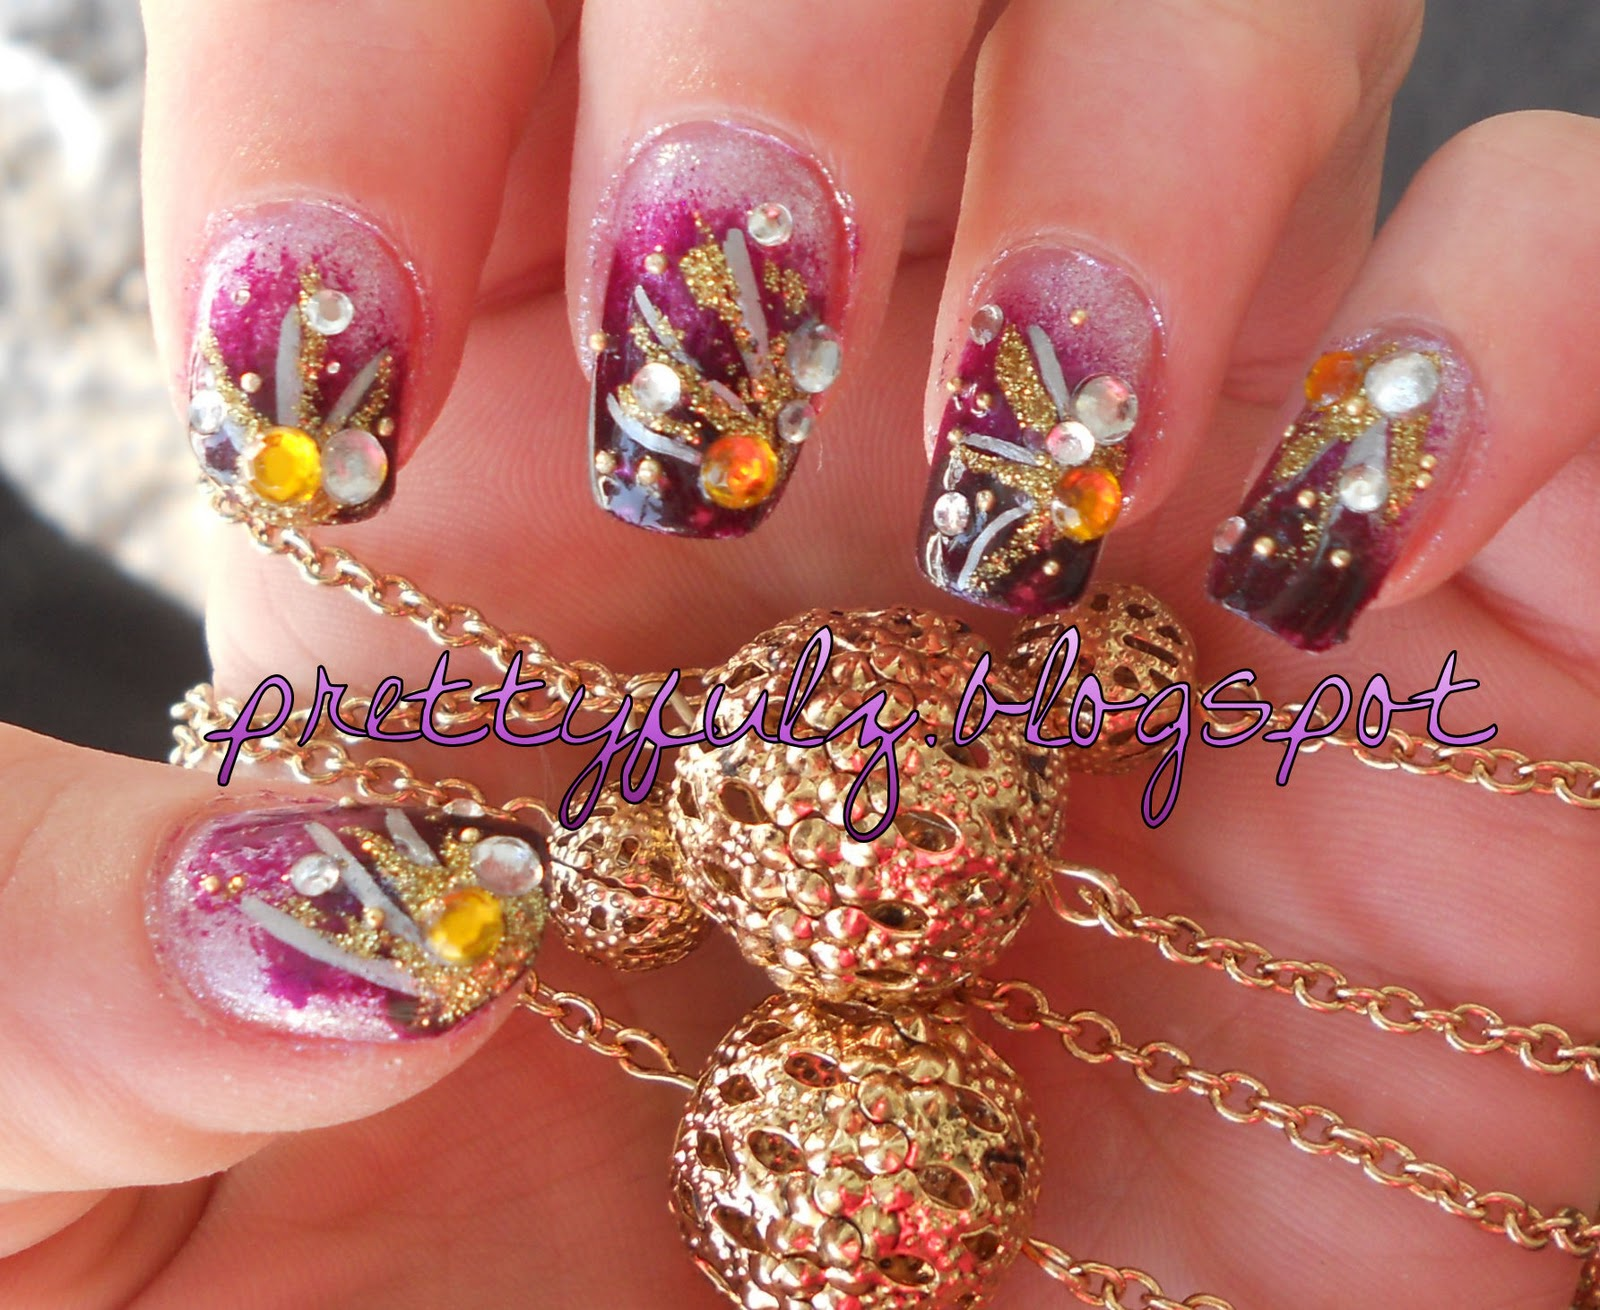 Prettyfulz: CUTE NAIL ART DESIGN | Purple Deco Nail Art